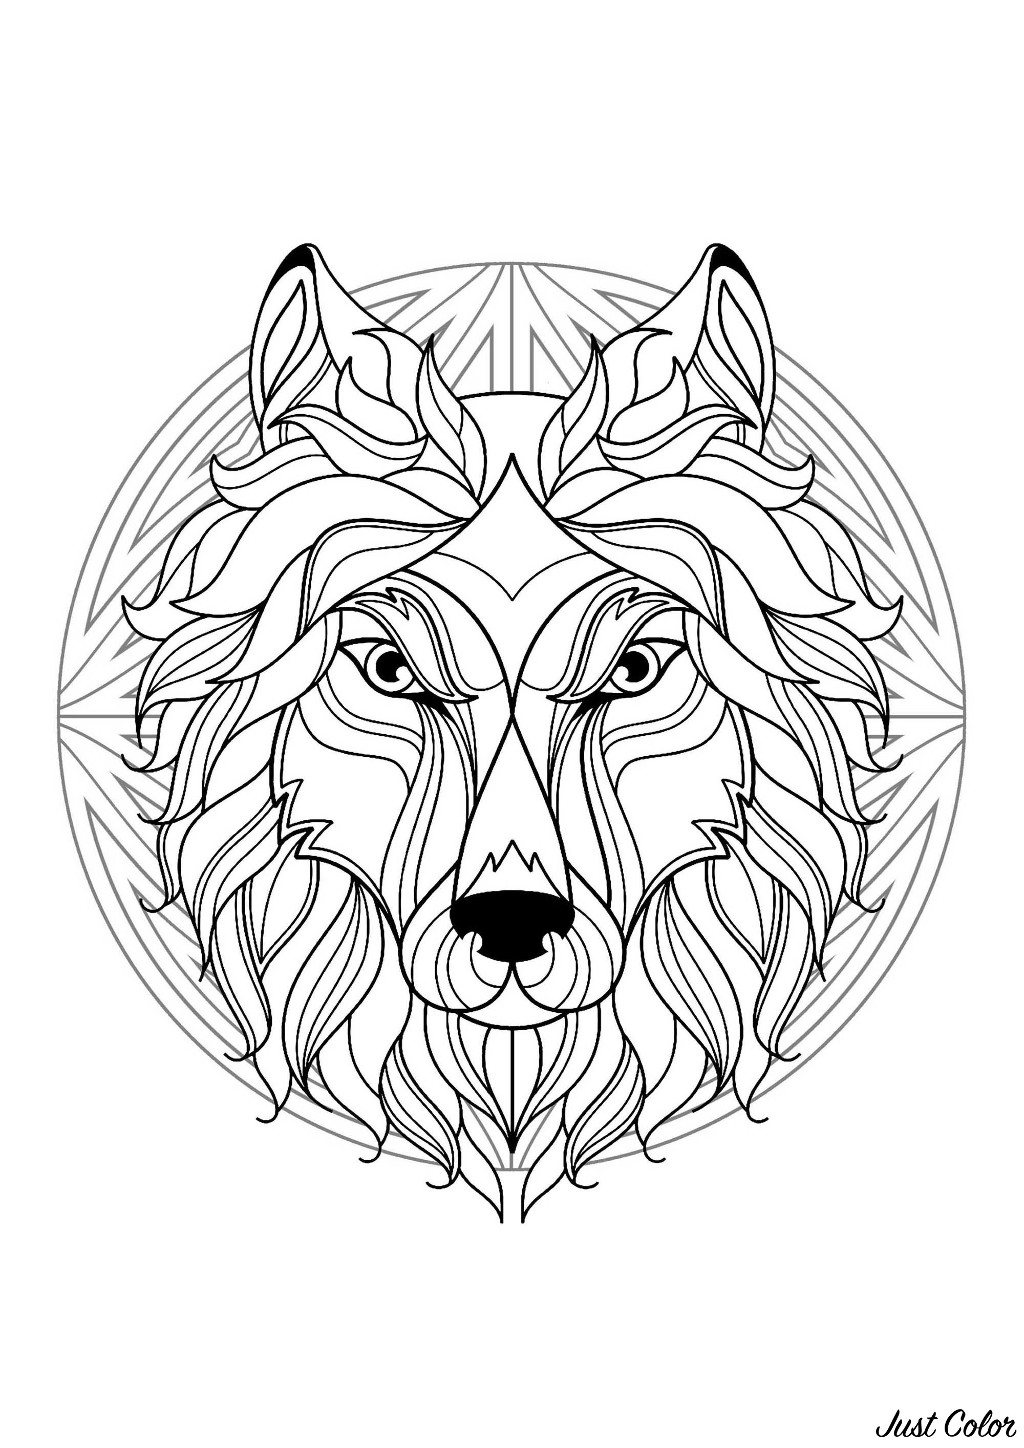 Wolf head in a difficult Mandala. If you are ready to color during a long time, get ready to color this incredible Mandala coloring page ... You can use the colors you prefer.